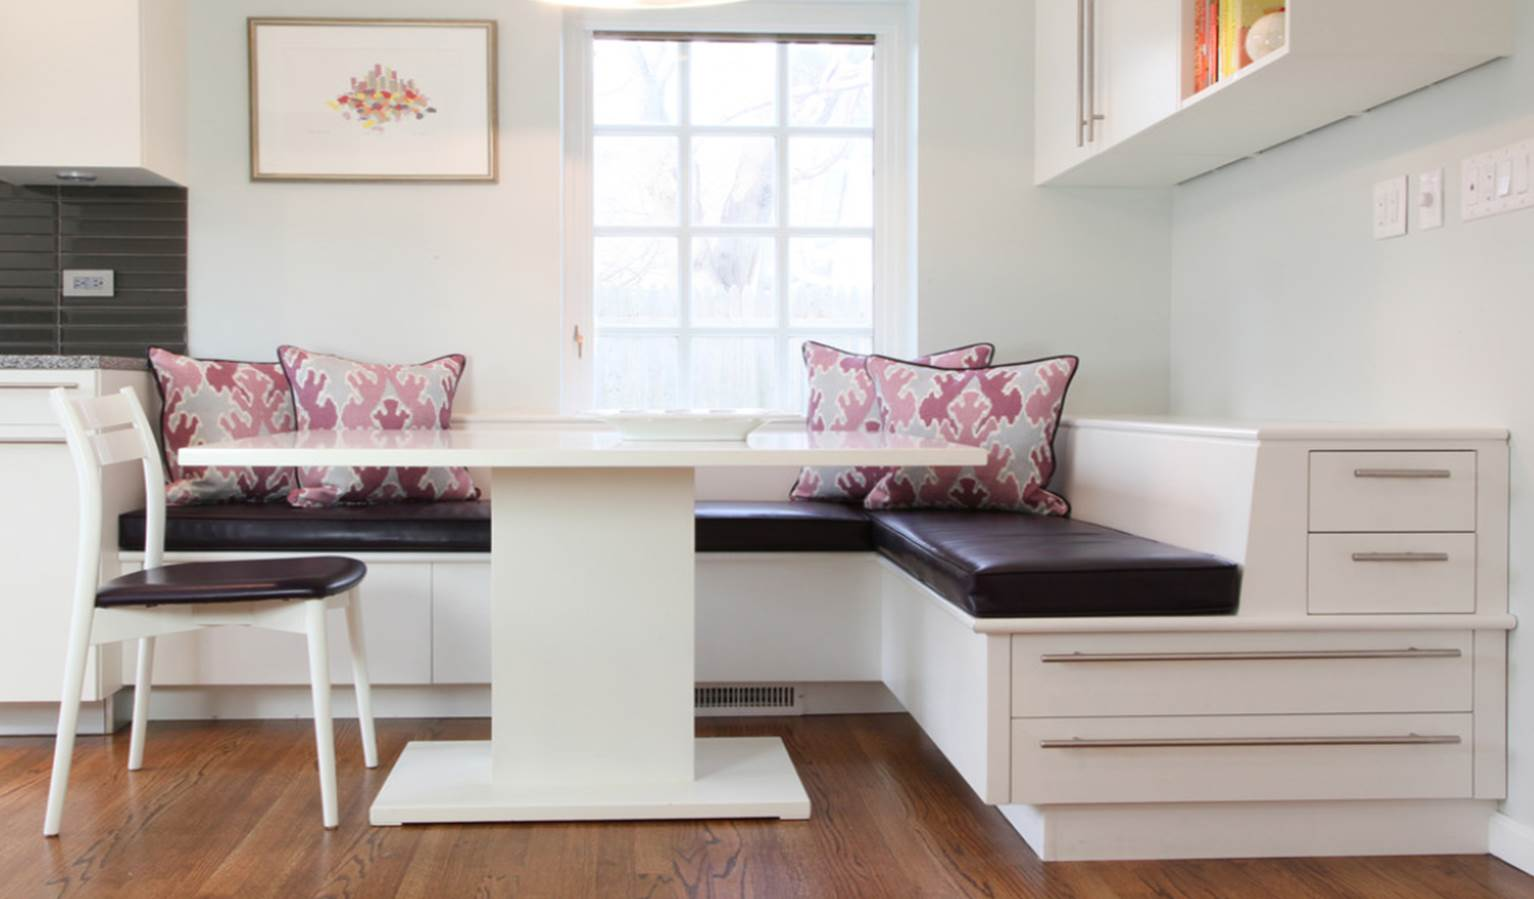 Kitchens and baths banquette built in corinne gail for Built in kitchen seating ideas